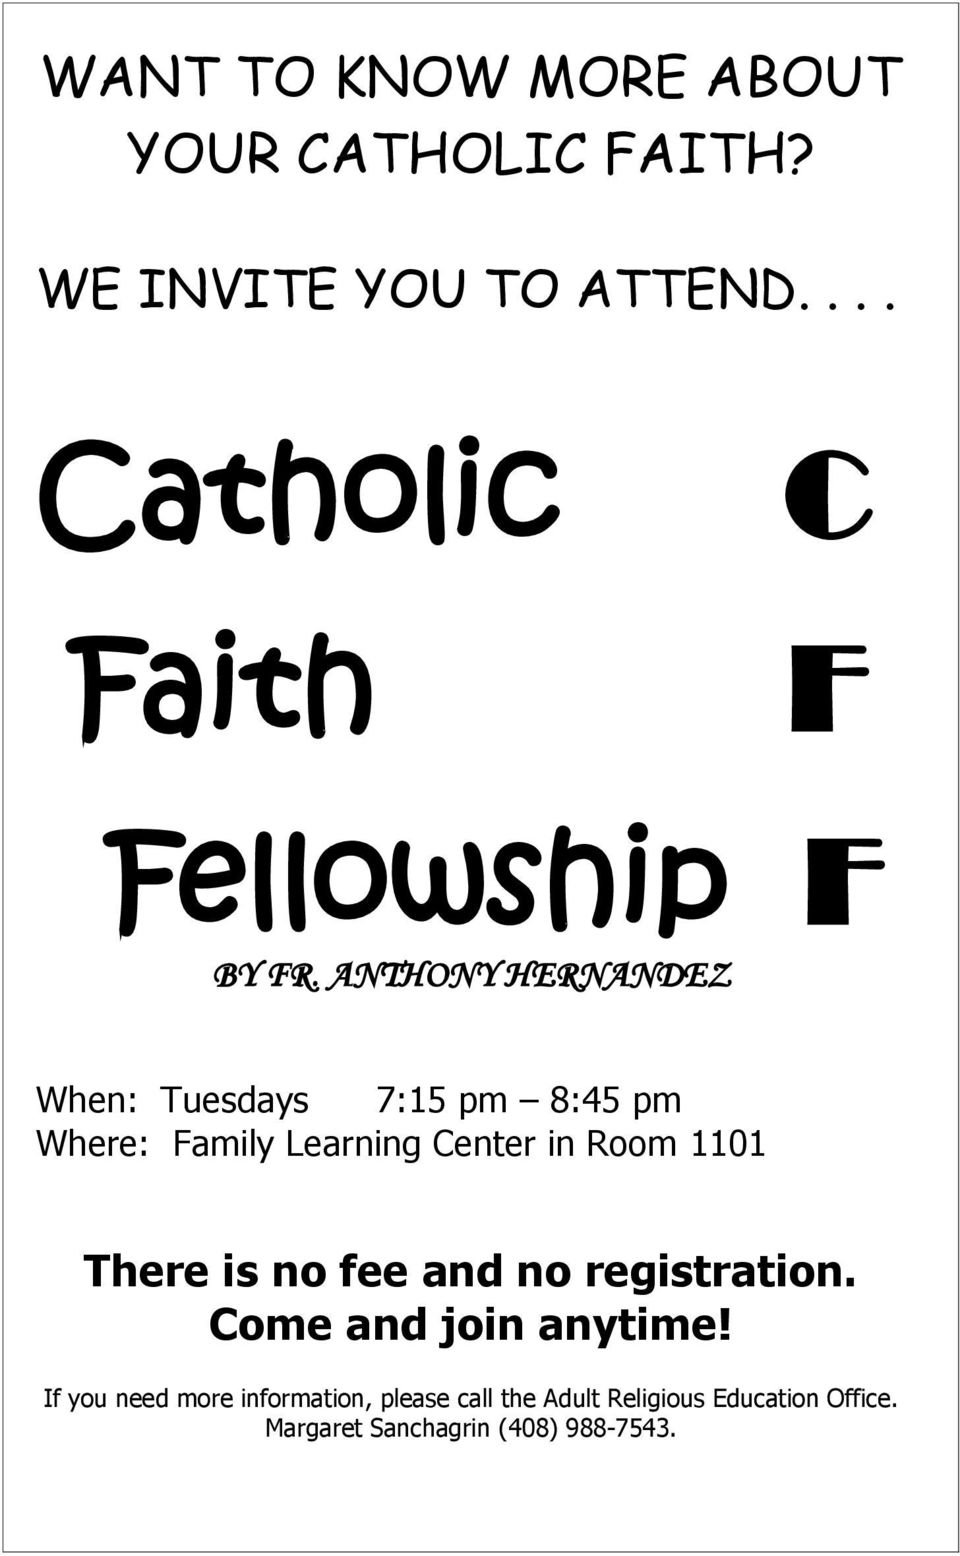 ANTHONY HERNANDEZ When: Tuesdays 7:15 pm 8:45 pm Where: Family Learning Center in Room 1101